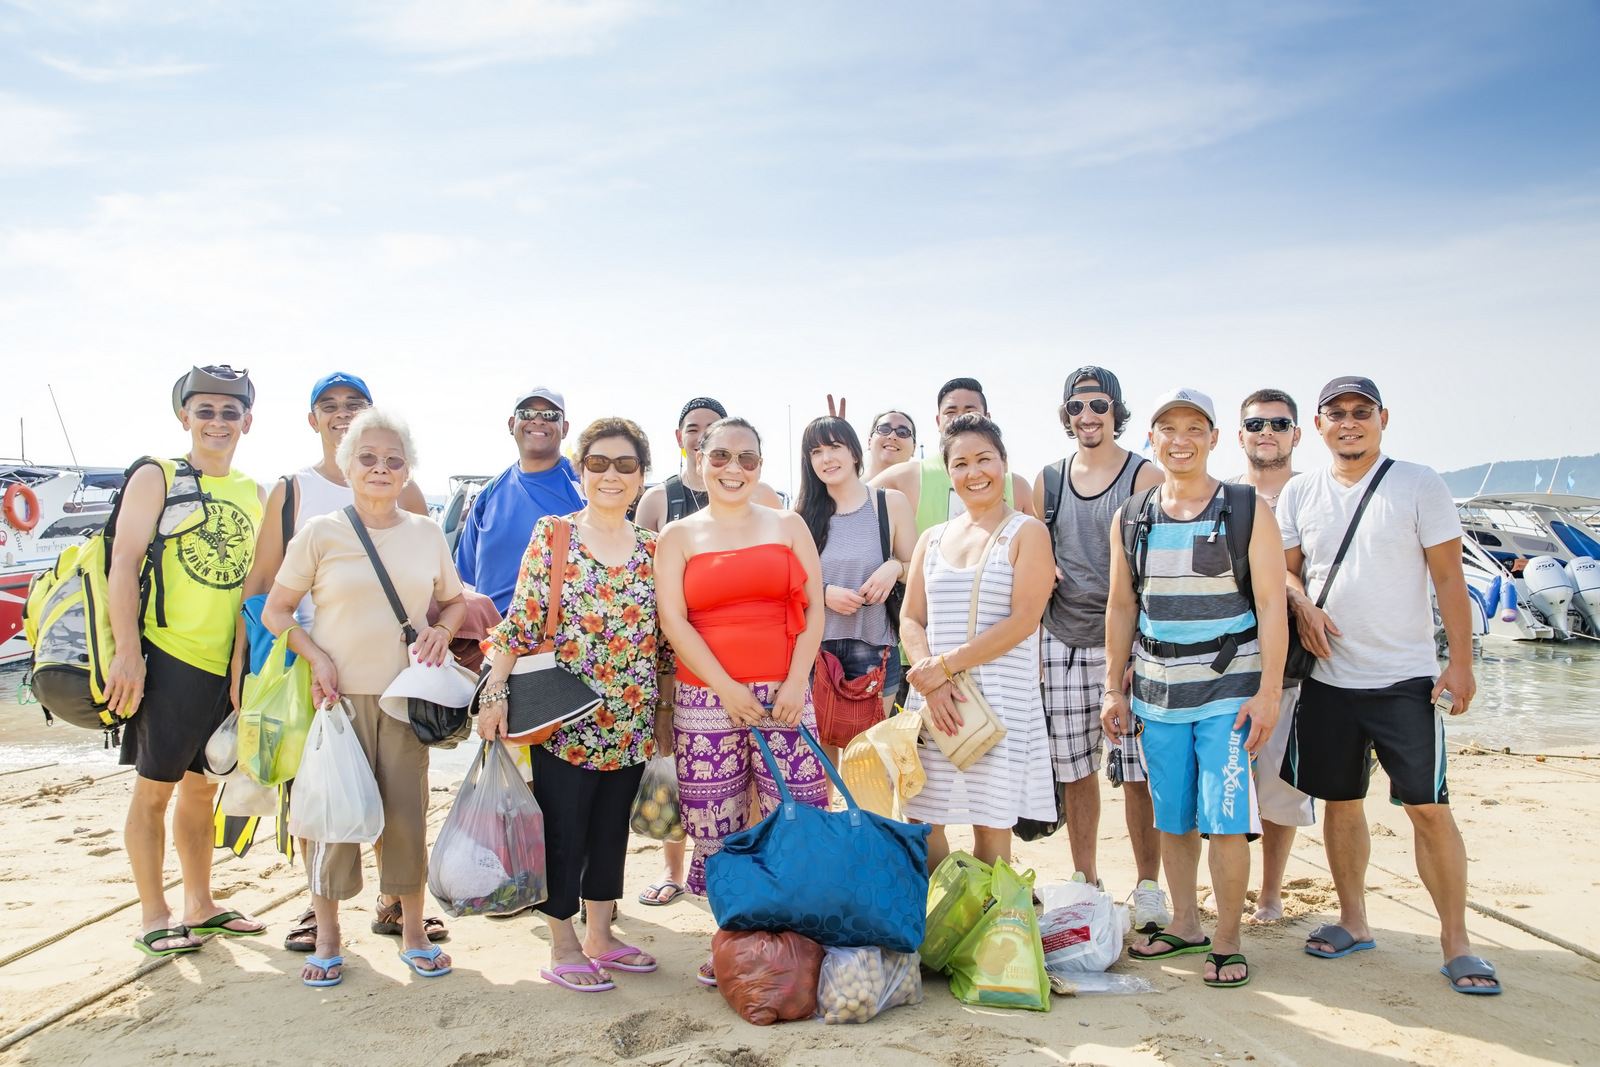 family reunion photo session at Coral island Phuket Thailand